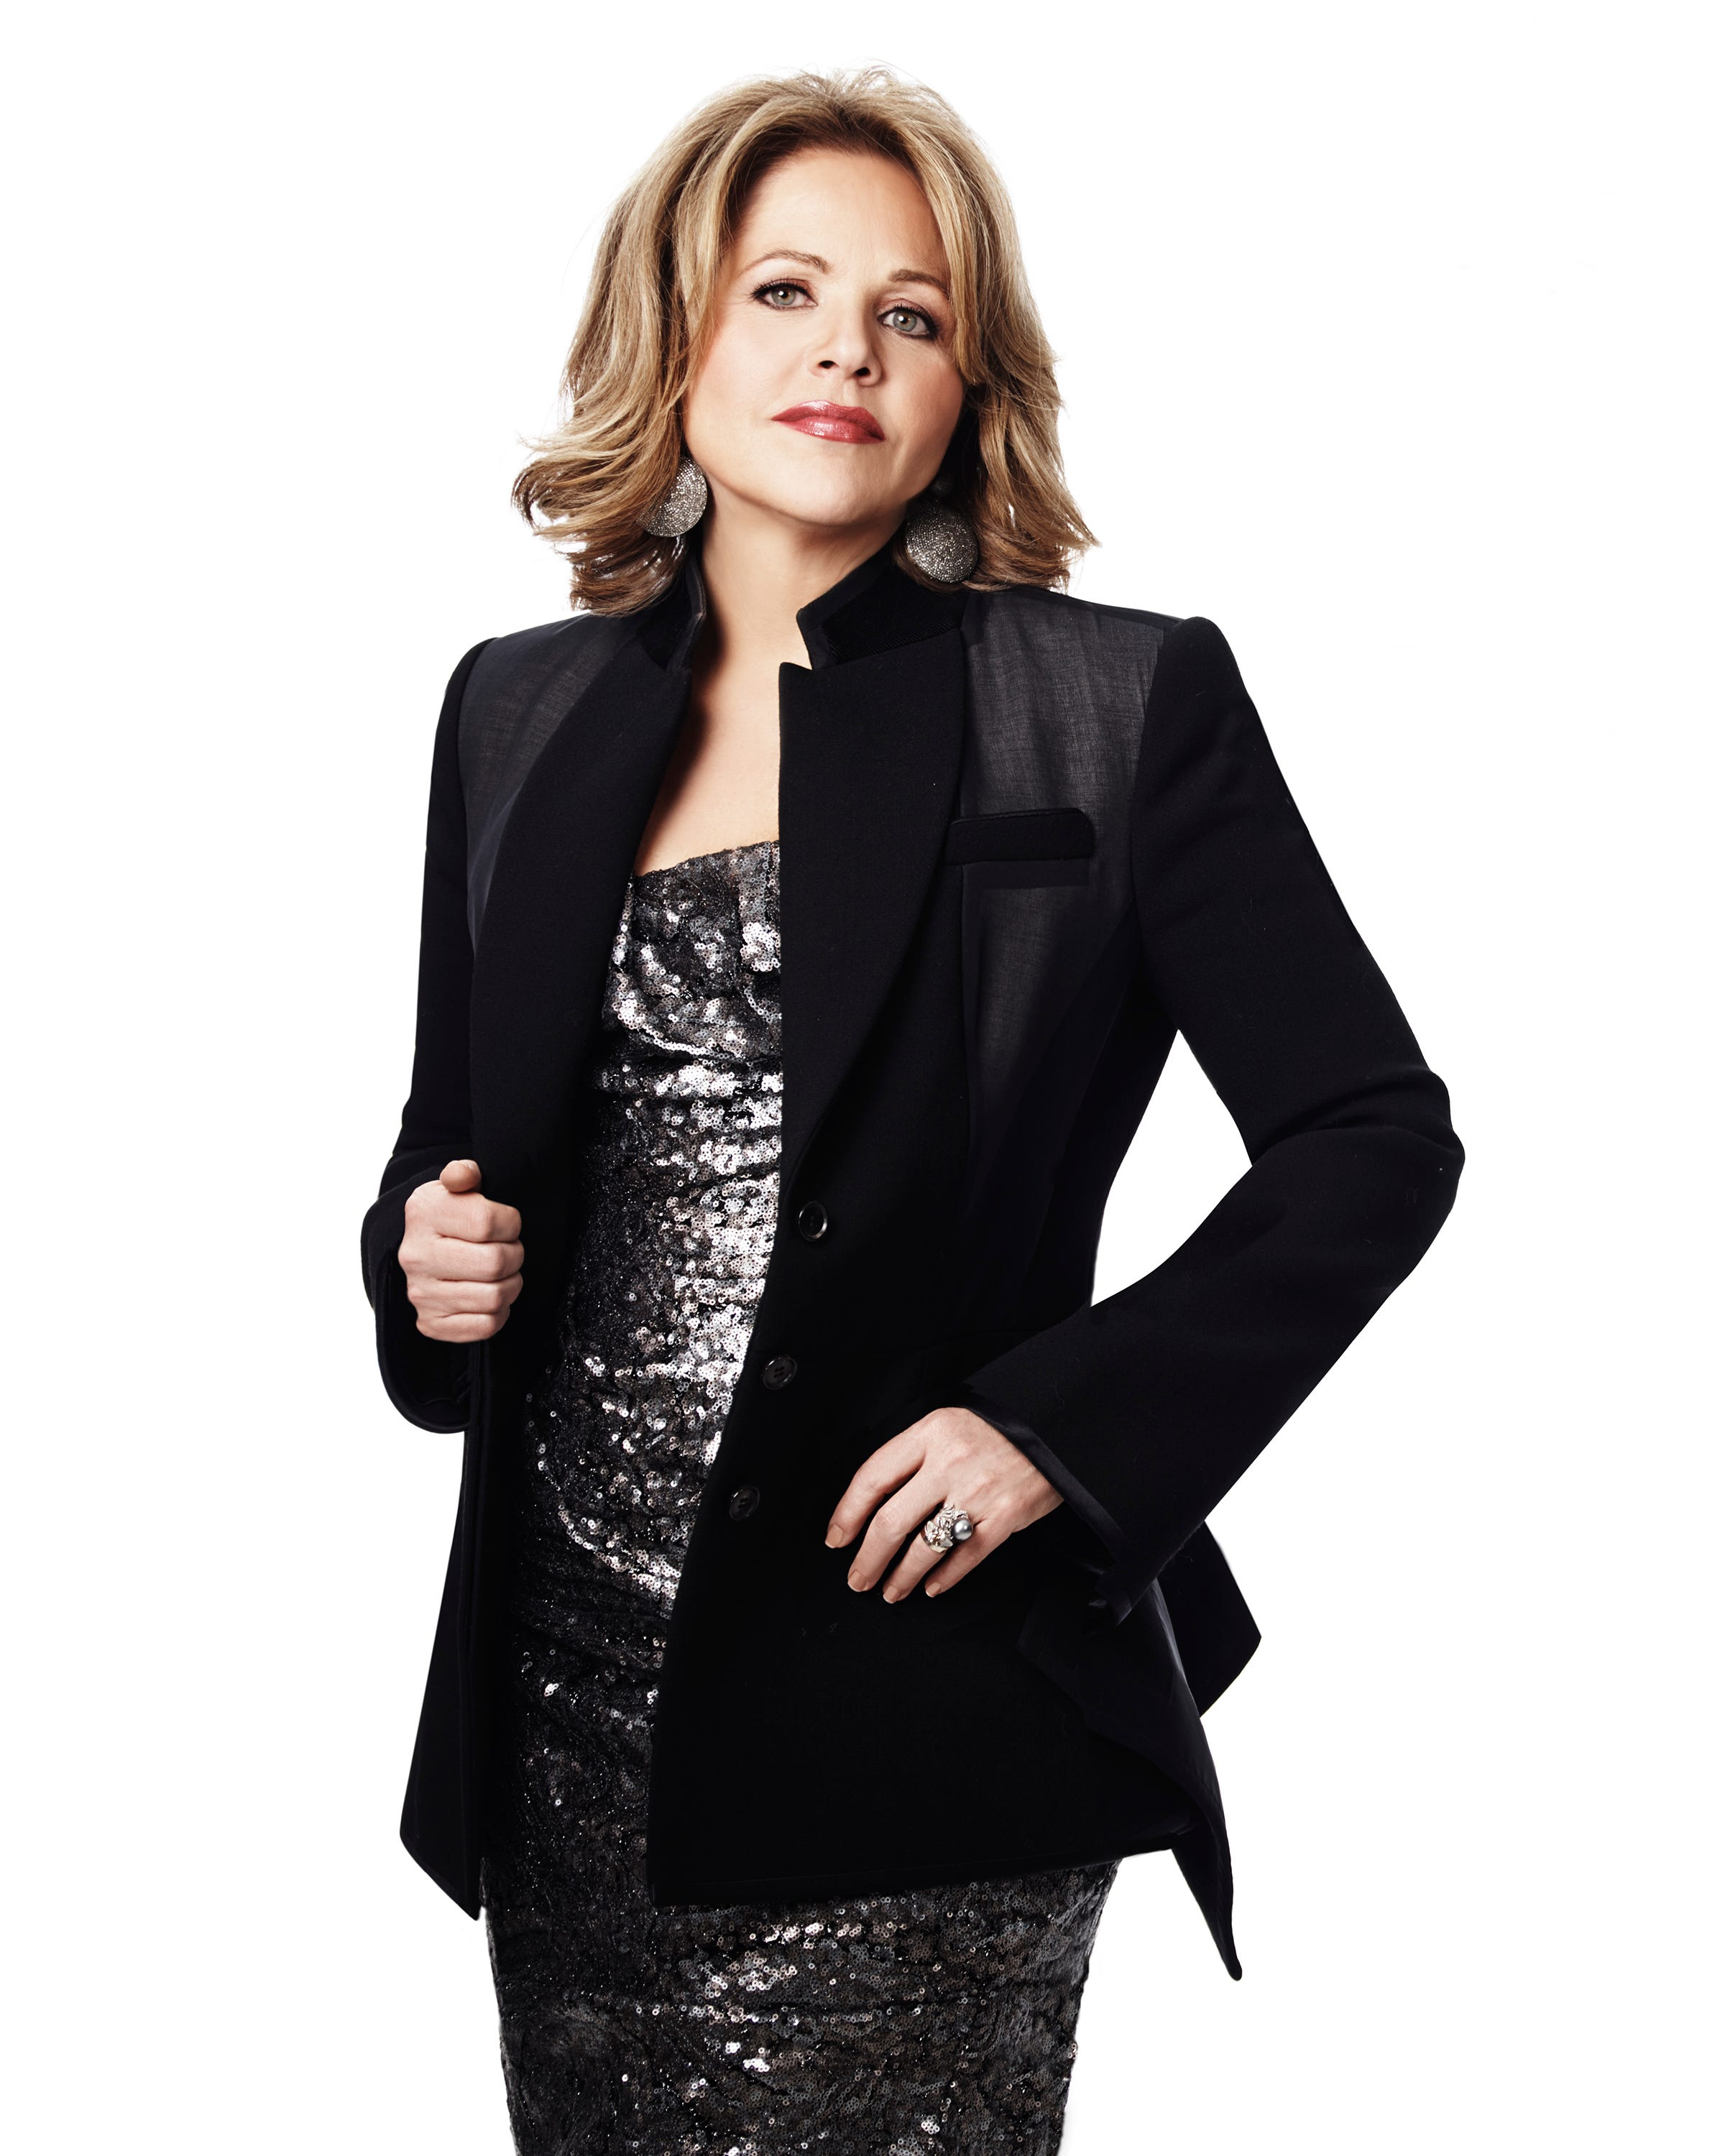 Concert review: Renee Fleming, Columbus Symphony provide evening of world-class music